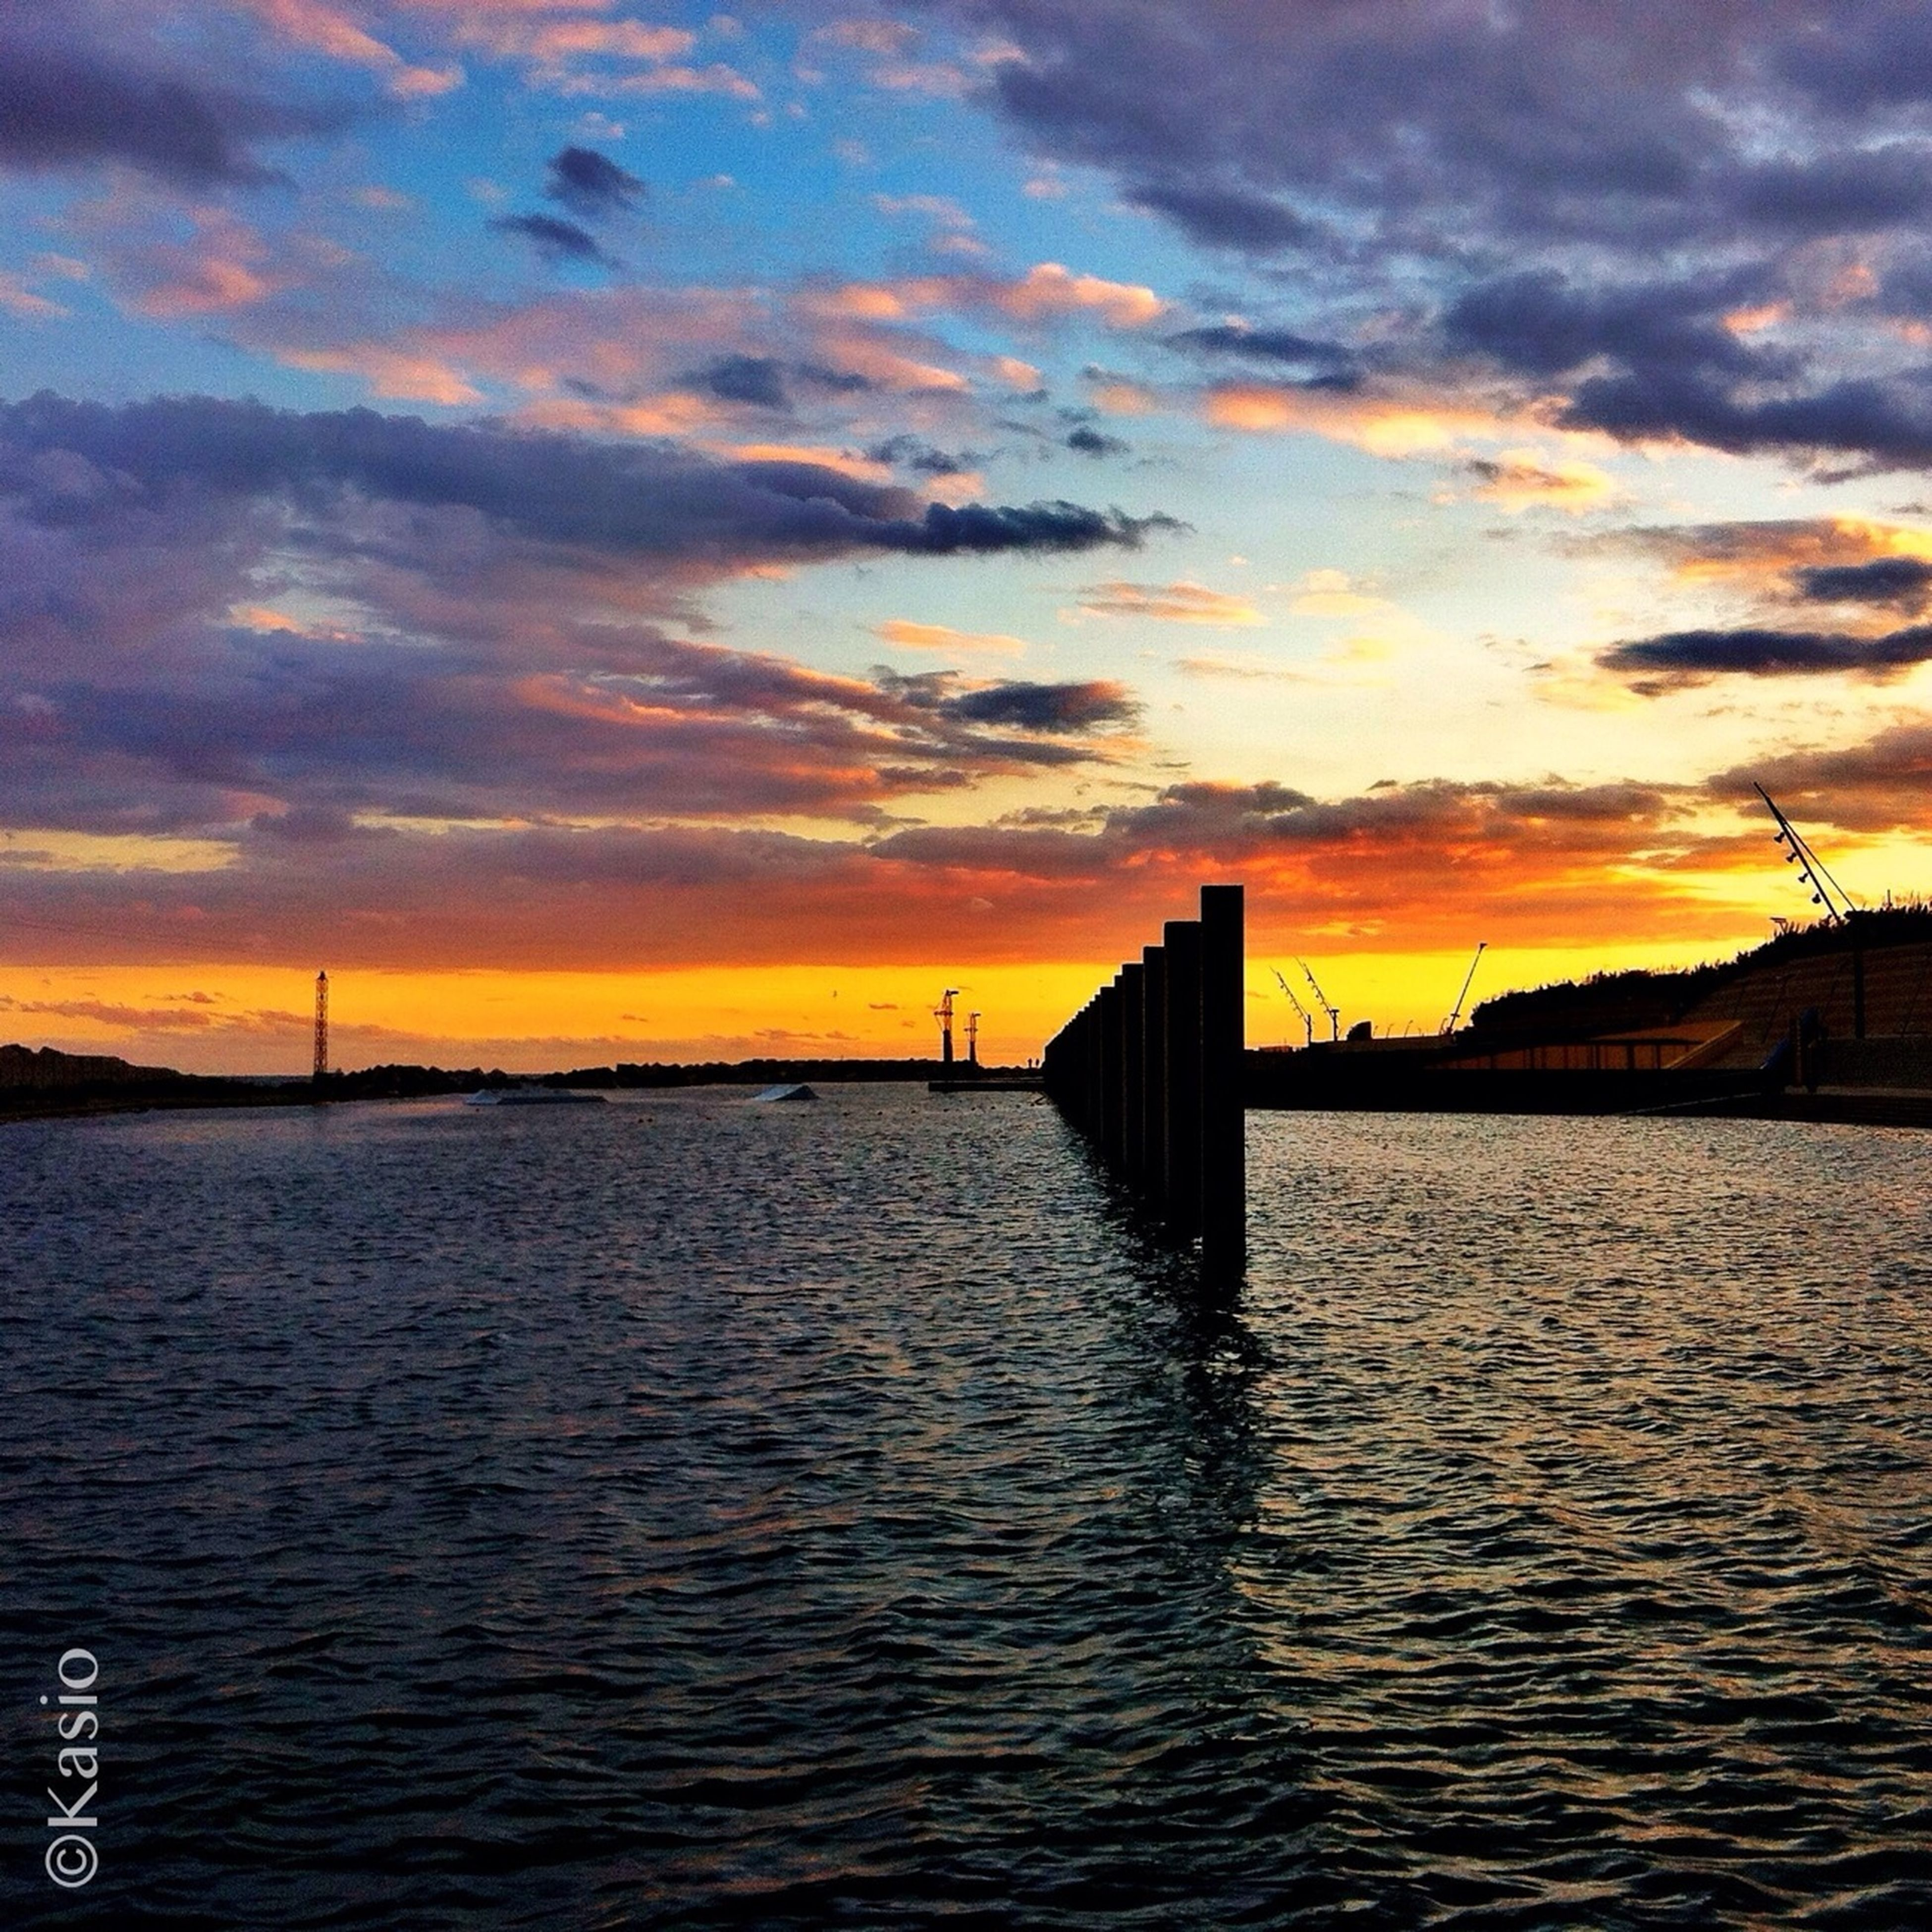 sunset, water, sky, orange color, scenics, cloud - sky, sea, beauty in nature, waterfront, tranquil scene, tranquility, built structure, rippled, silhouette, dramatic sky, architecture, idyllic, nature, pier, cloud